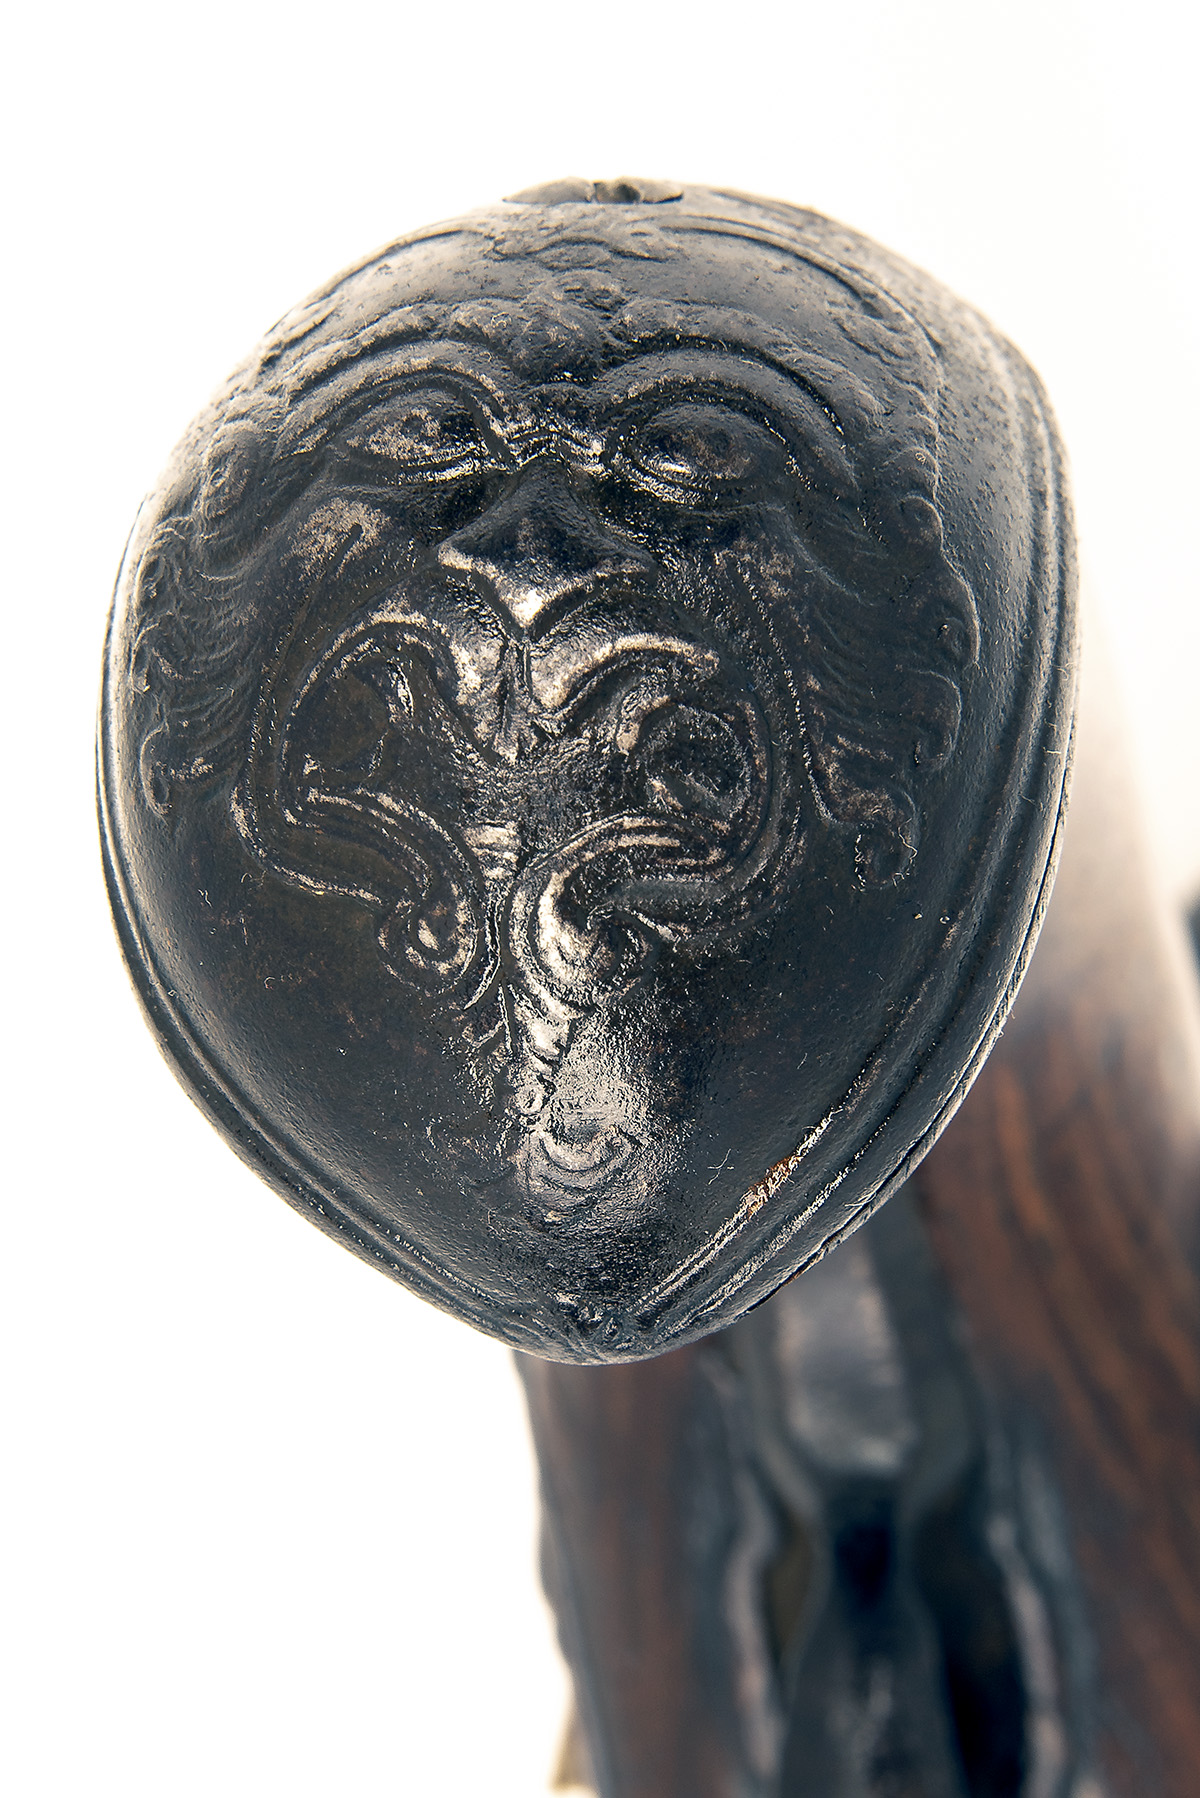 A 22-BORE FLINTLOCK HORSE-PISTOL, UNSIGNED, no visible serial number, German or Bohemian circa 1775, - Image 5 of 7